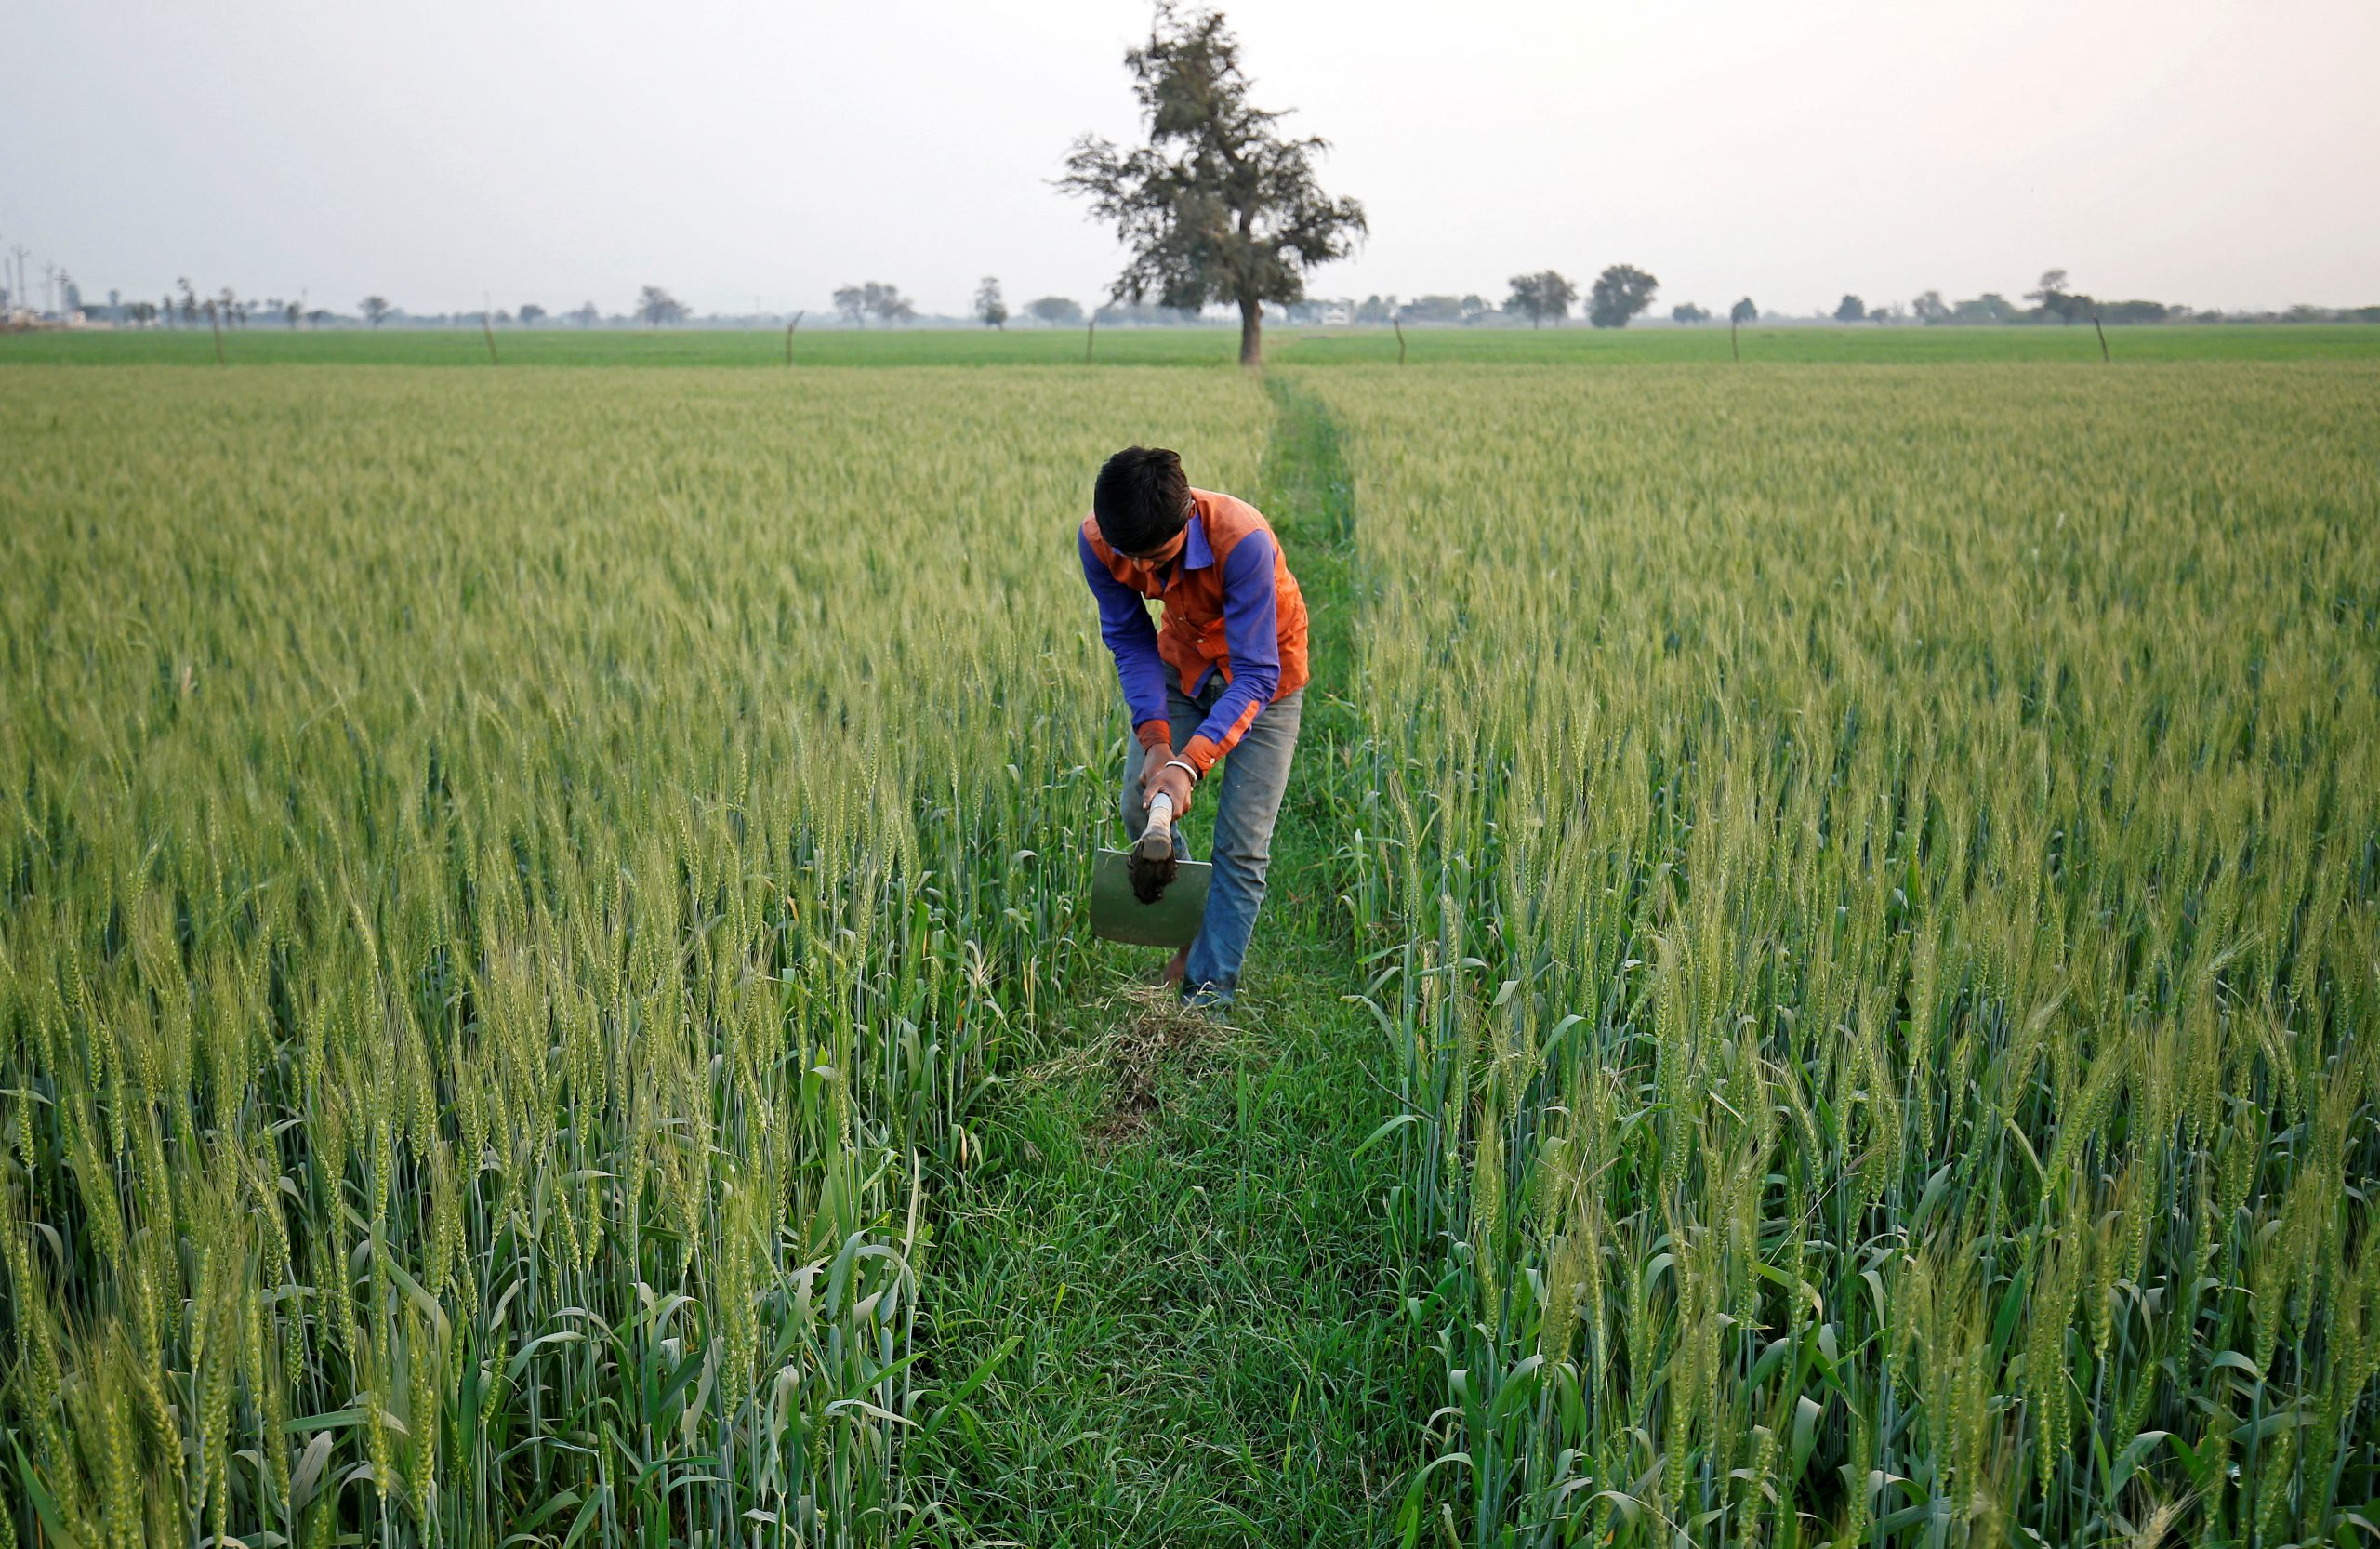 FILE PHOTO: A farmer works in wheat field on the outskirts of Ahmedabad, India February 1, 2018. REUTERS/Amit Dave/File Photo